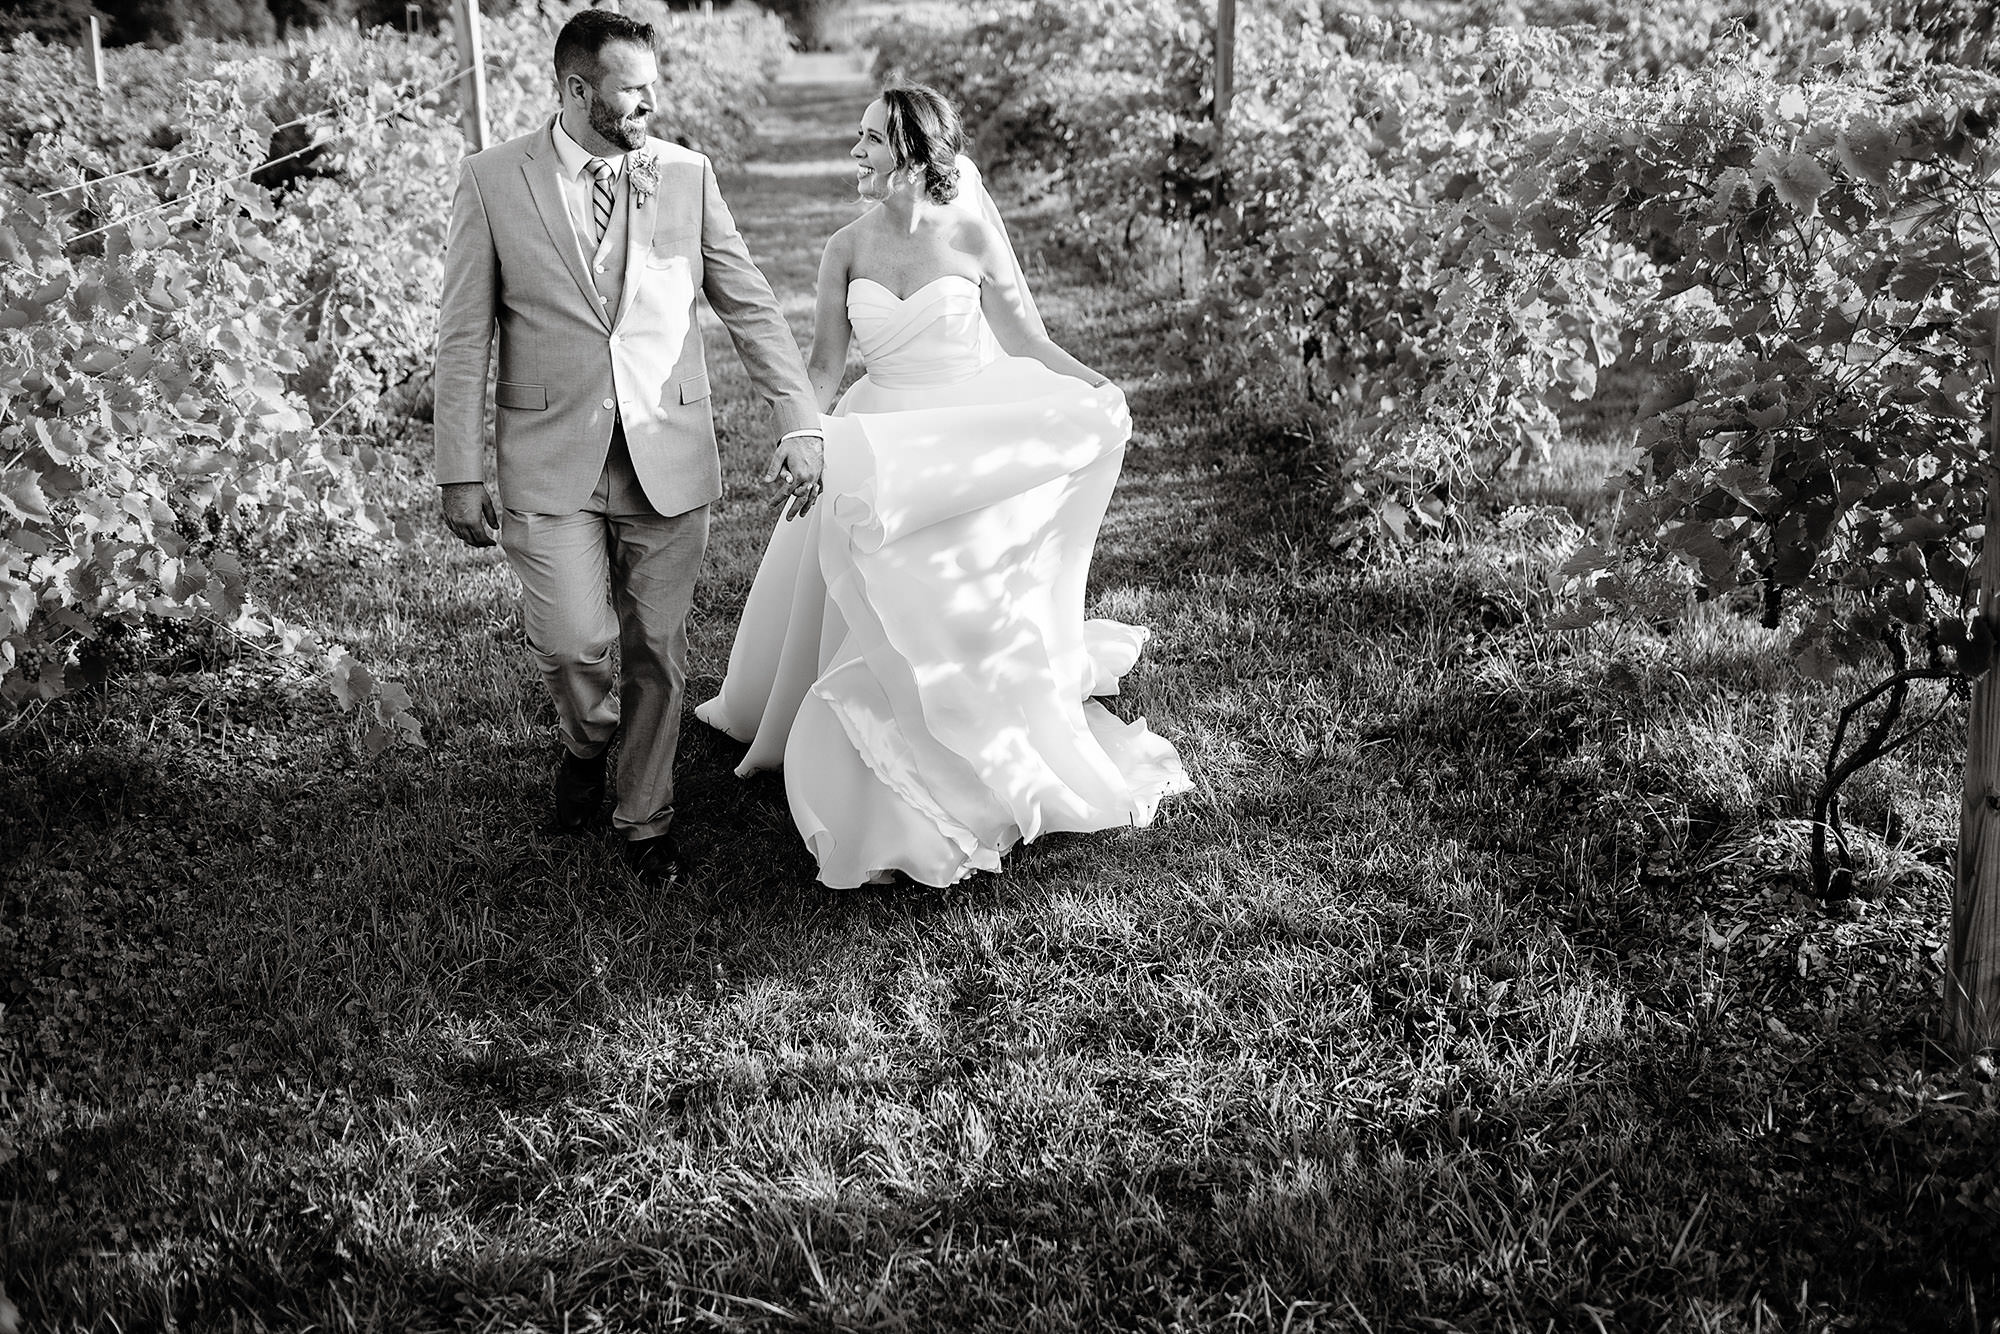 Red Maple Vineyard Wedding  I  The bride and groom walk among the vines on their wedding day.